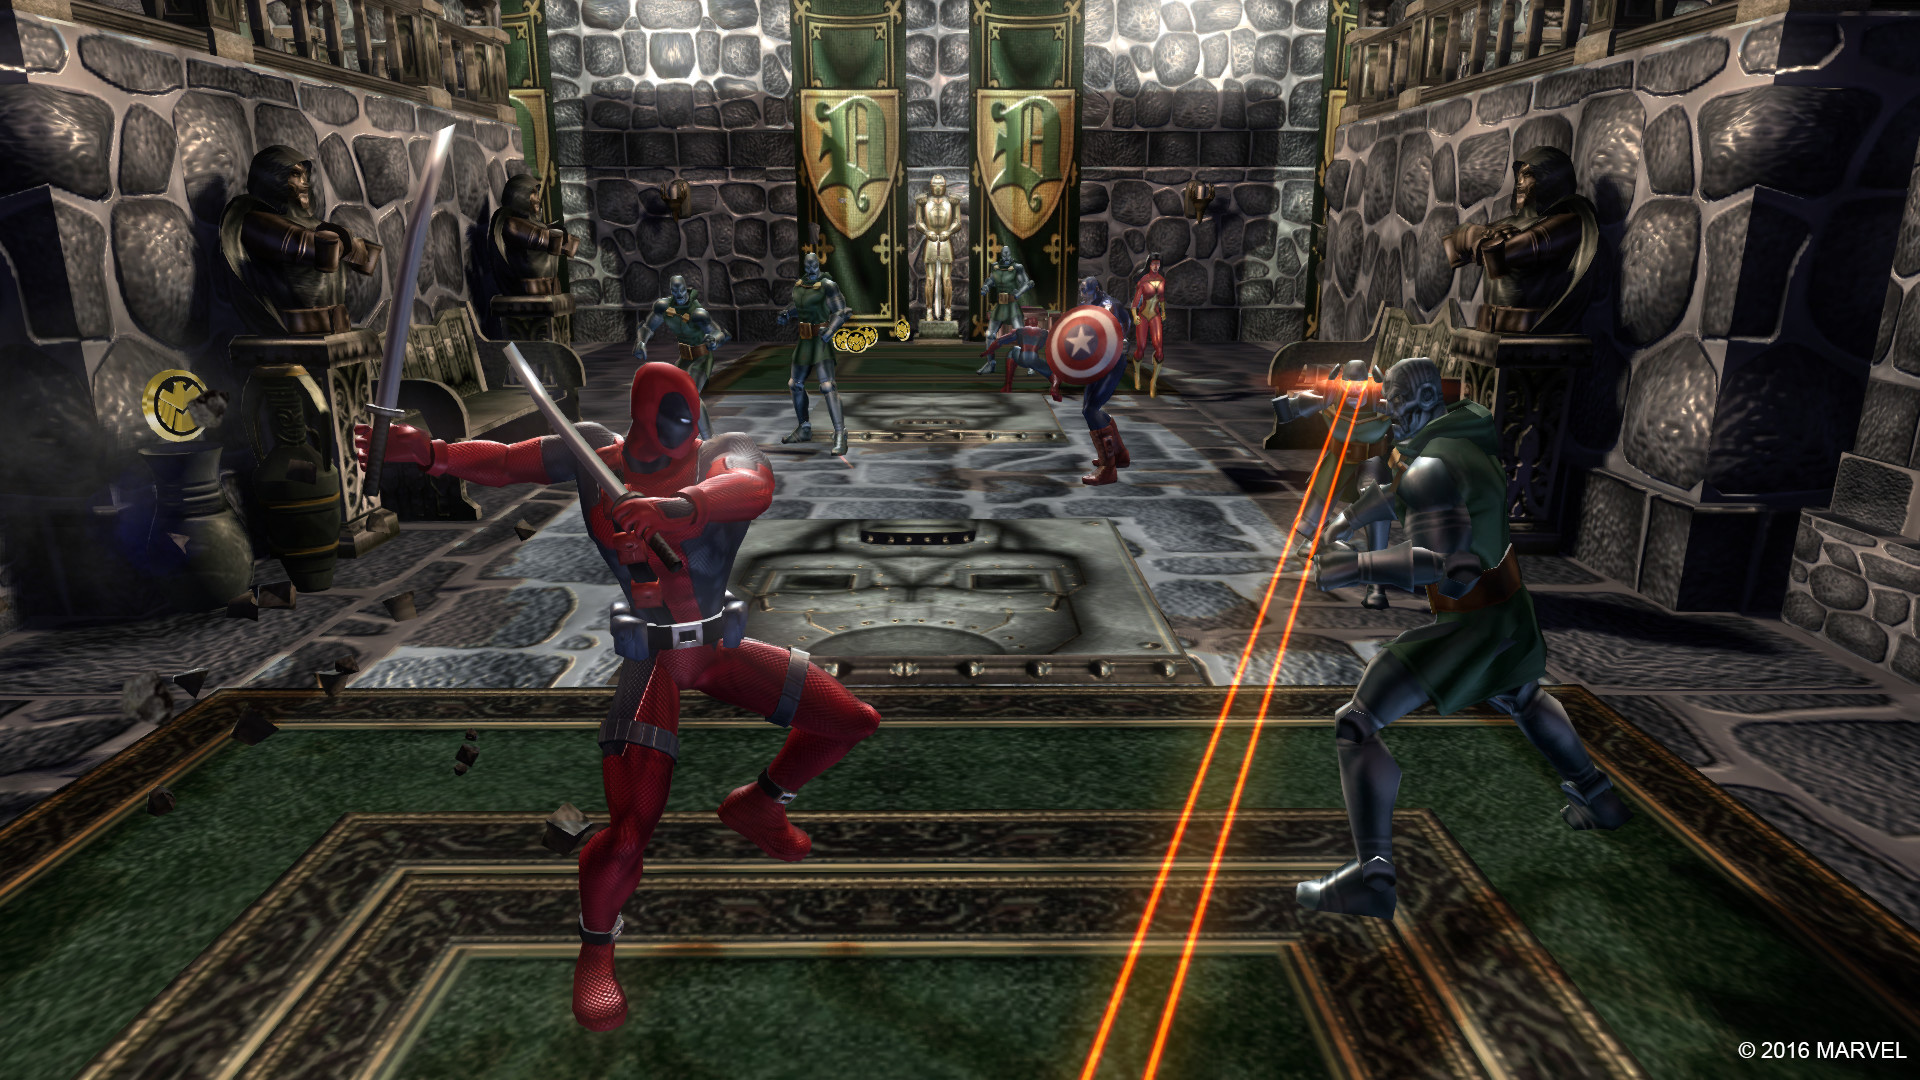 The Marvel: Ultimate Alliance games were delisted as feared